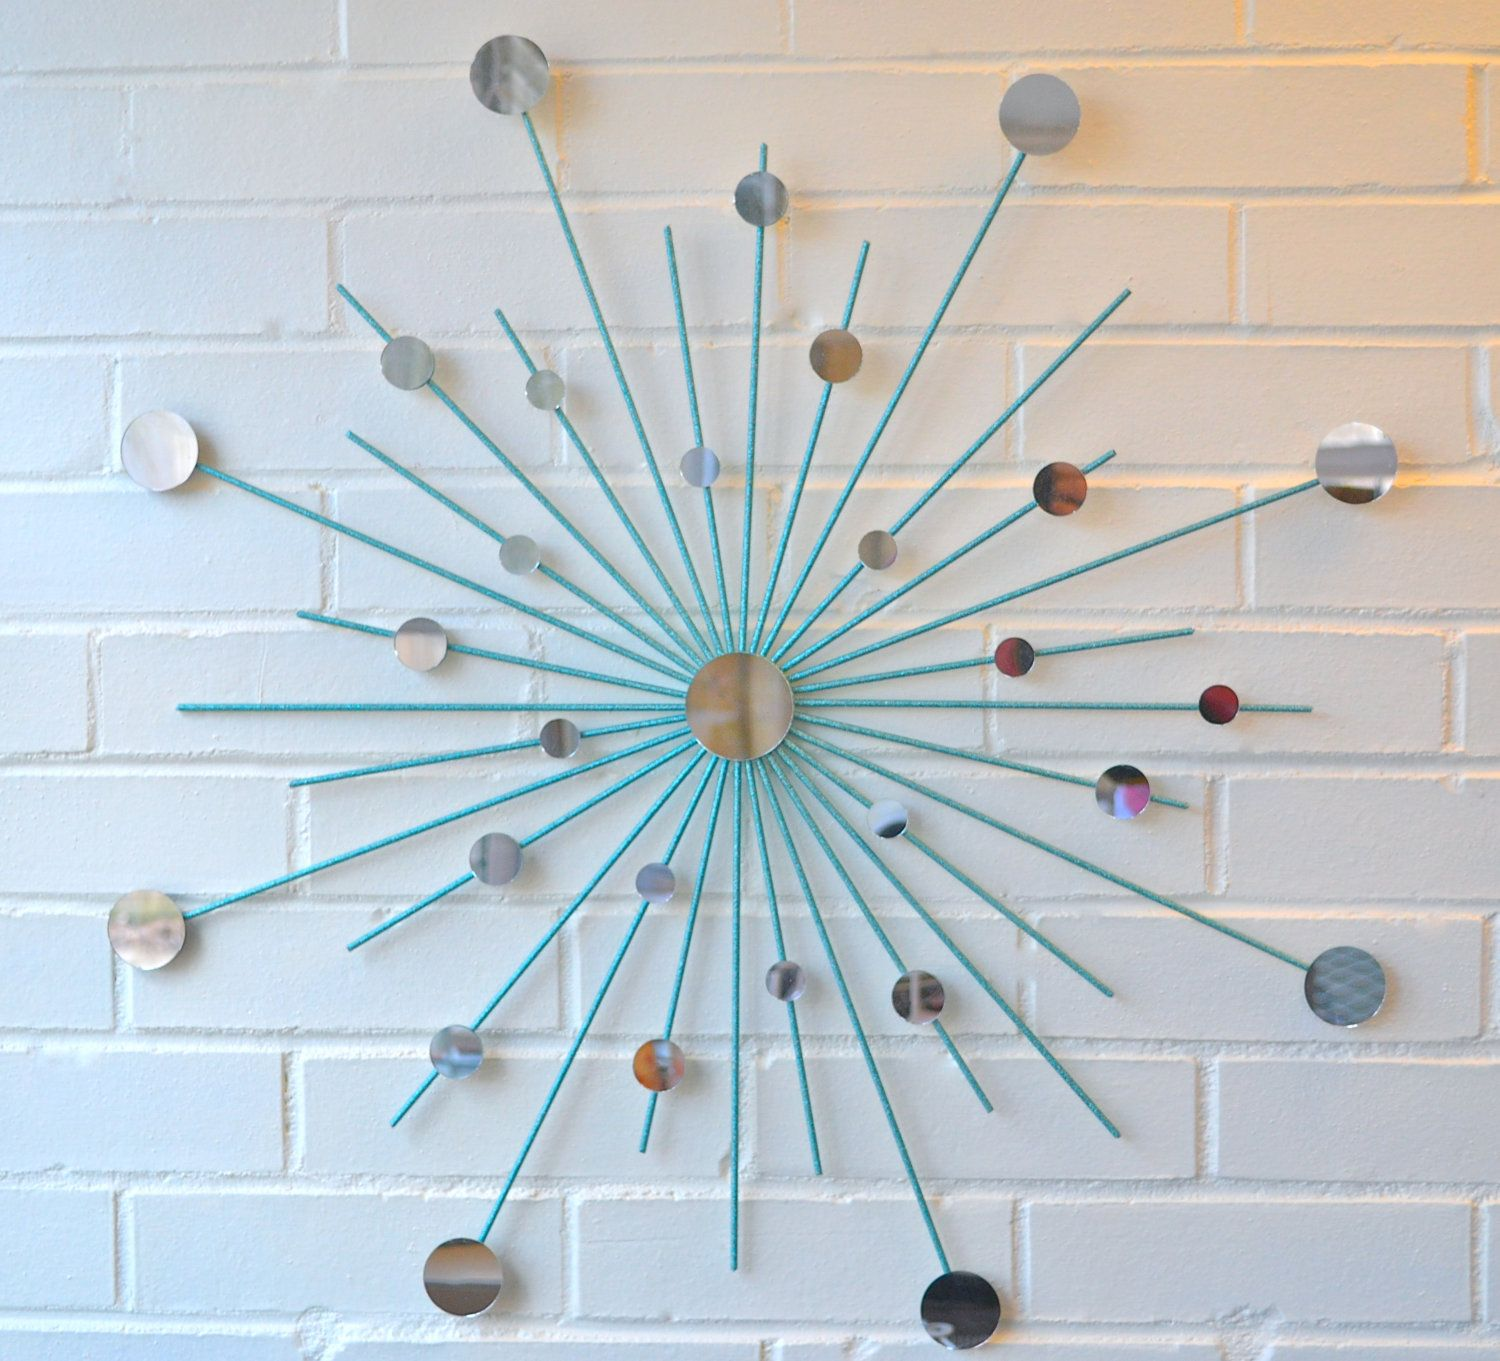 Teal Metal Wall Art Modern Metal Wall Art Mirror Mod Style Star Starburst Sun Sunburst